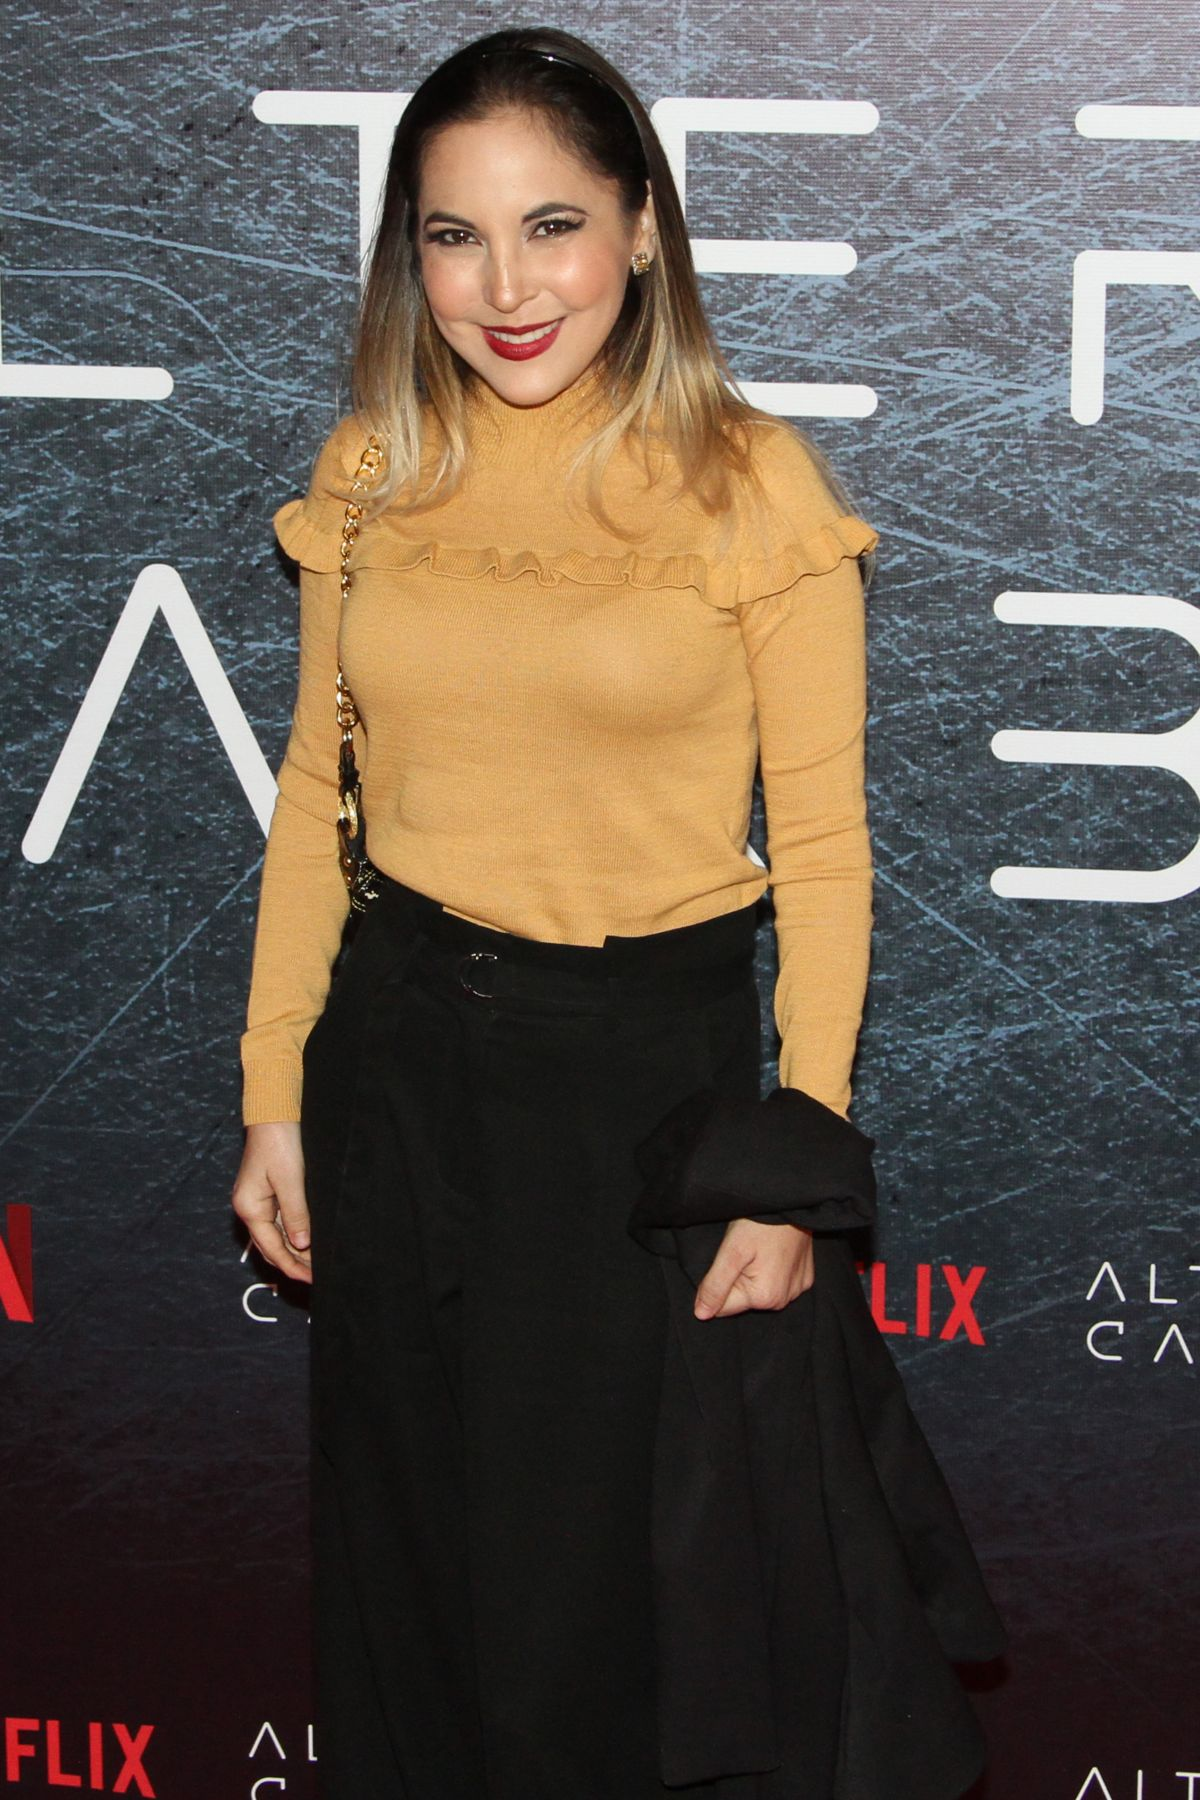 MIRIAM HIGAREDA at Altered Carbon TV Show Photocall in